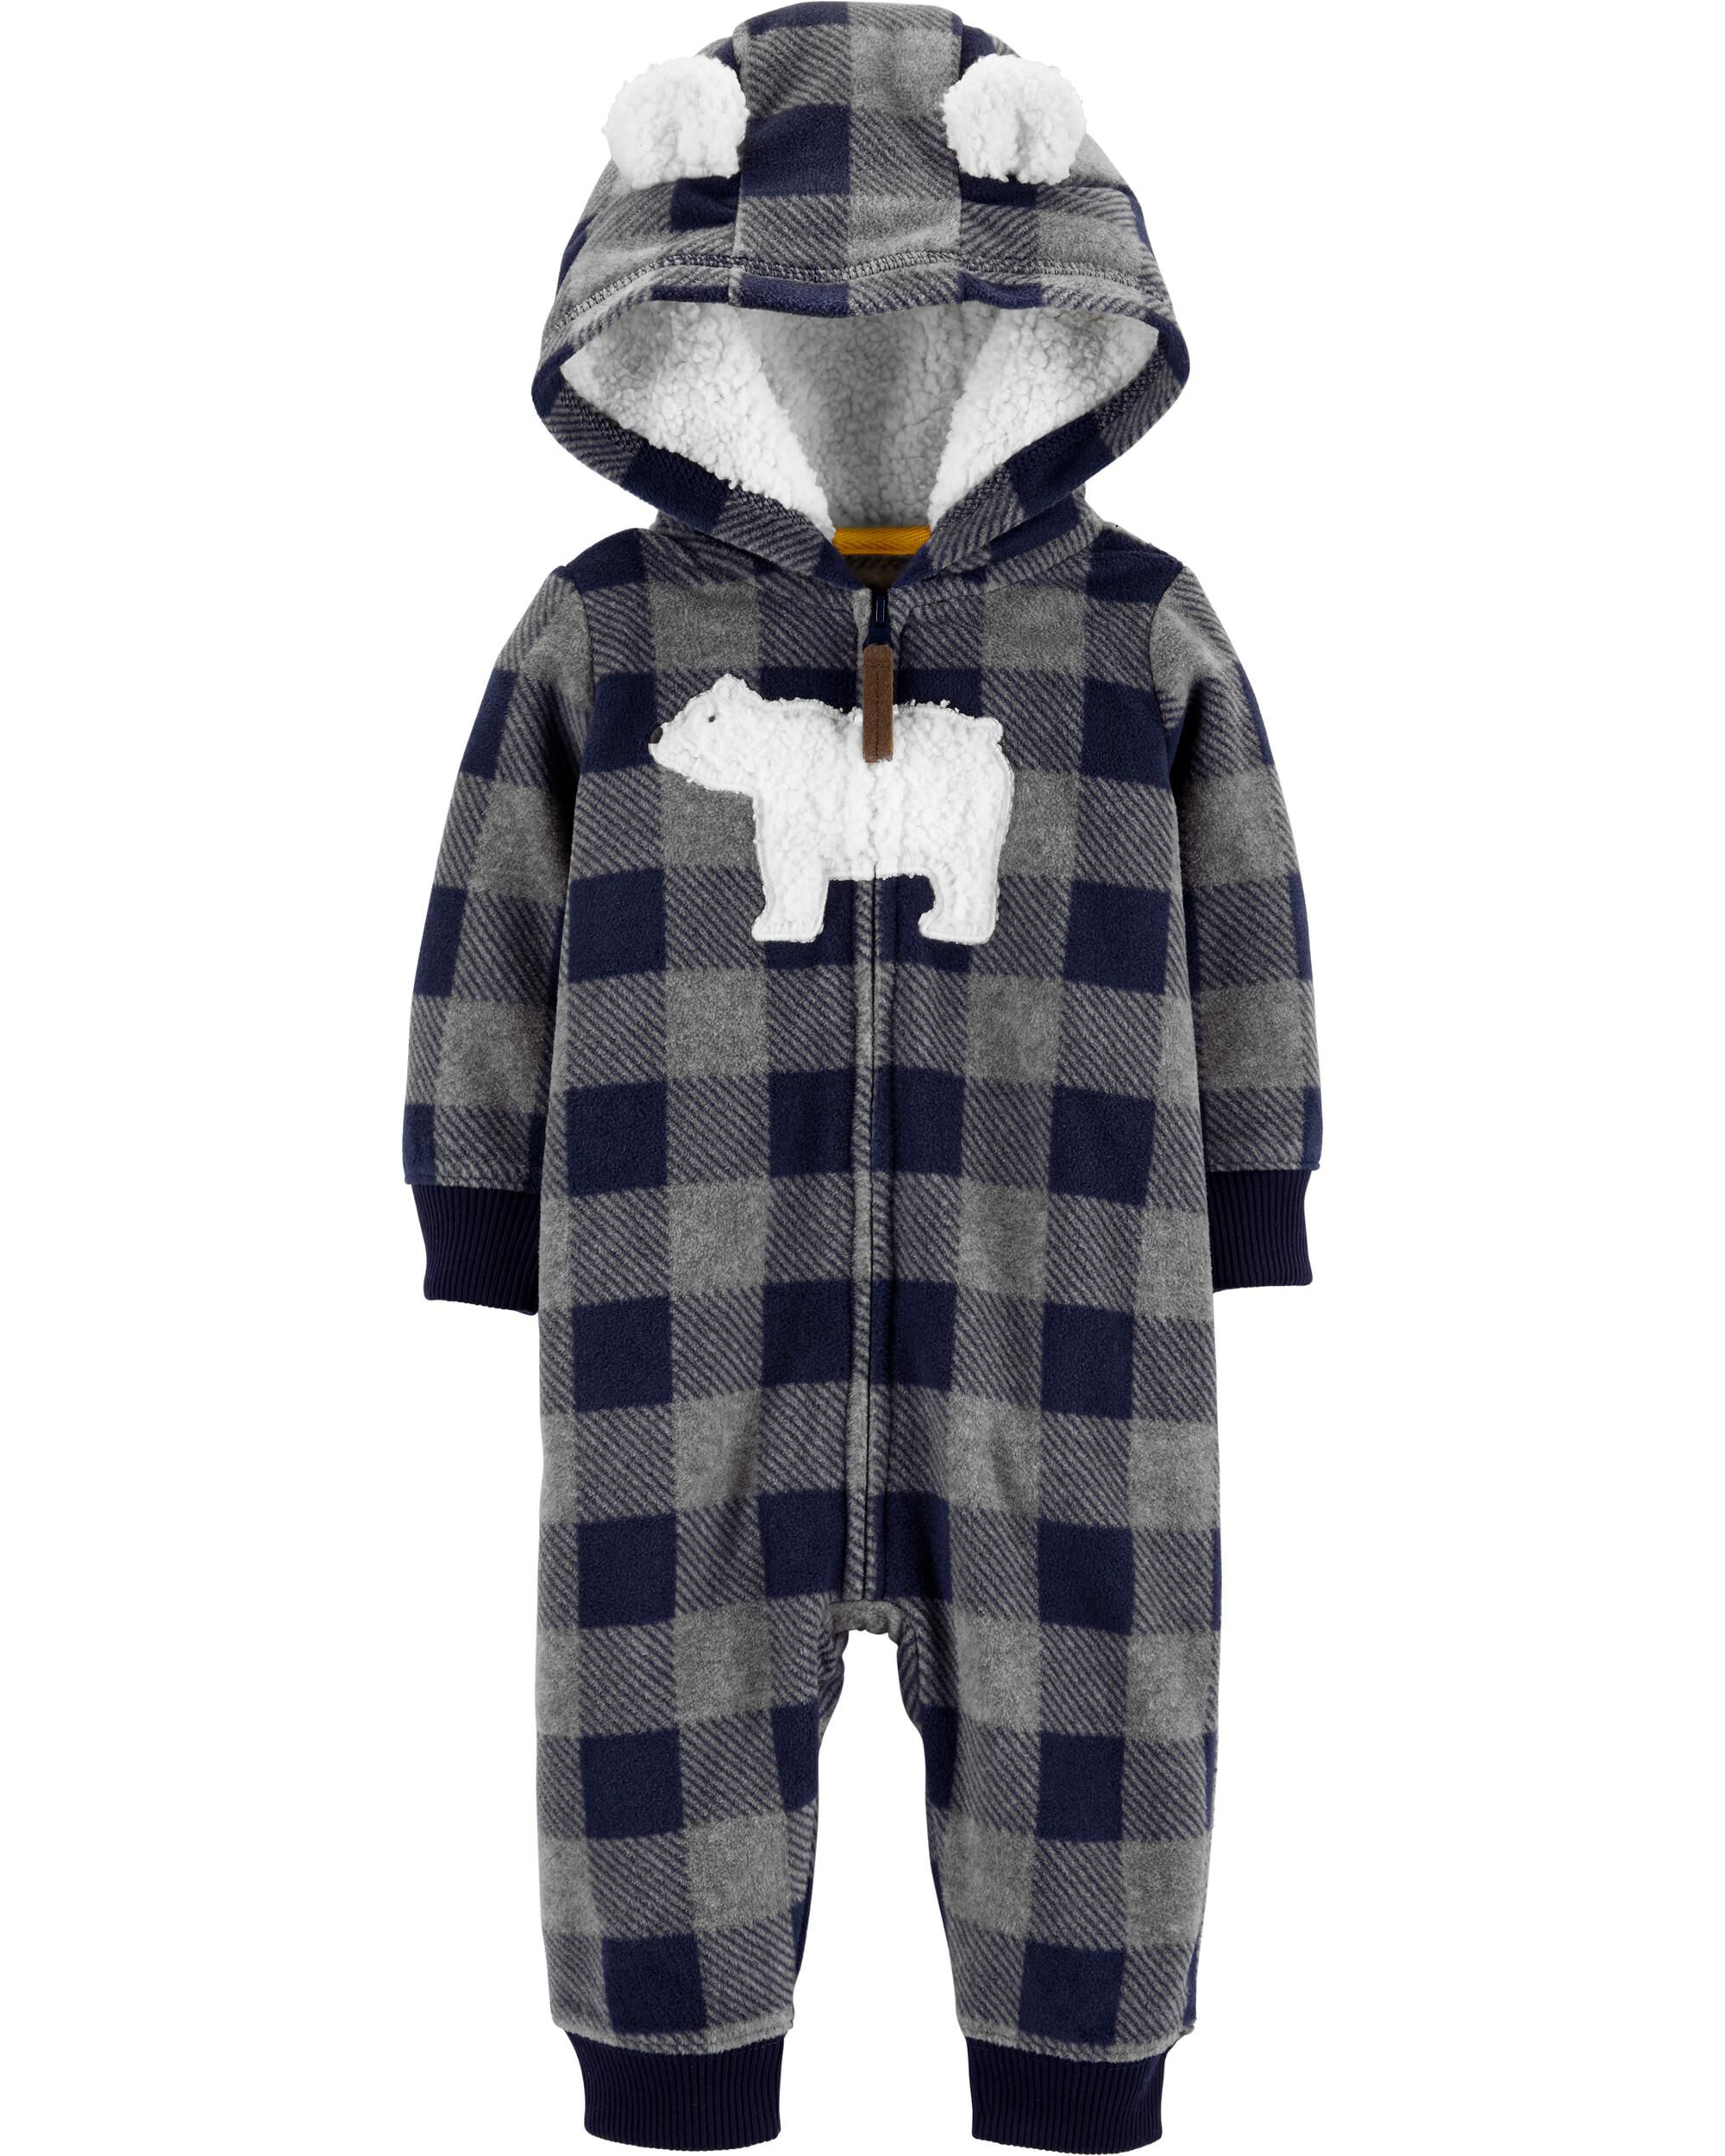 Boys' Clothing (Newborn-5T) Baby & Toddler Clothing, Shoes & Accessories Carter's Boy's Size 4 Footed Pajama Sleeper 4T Red & Blue Striped Raccoon Zipper